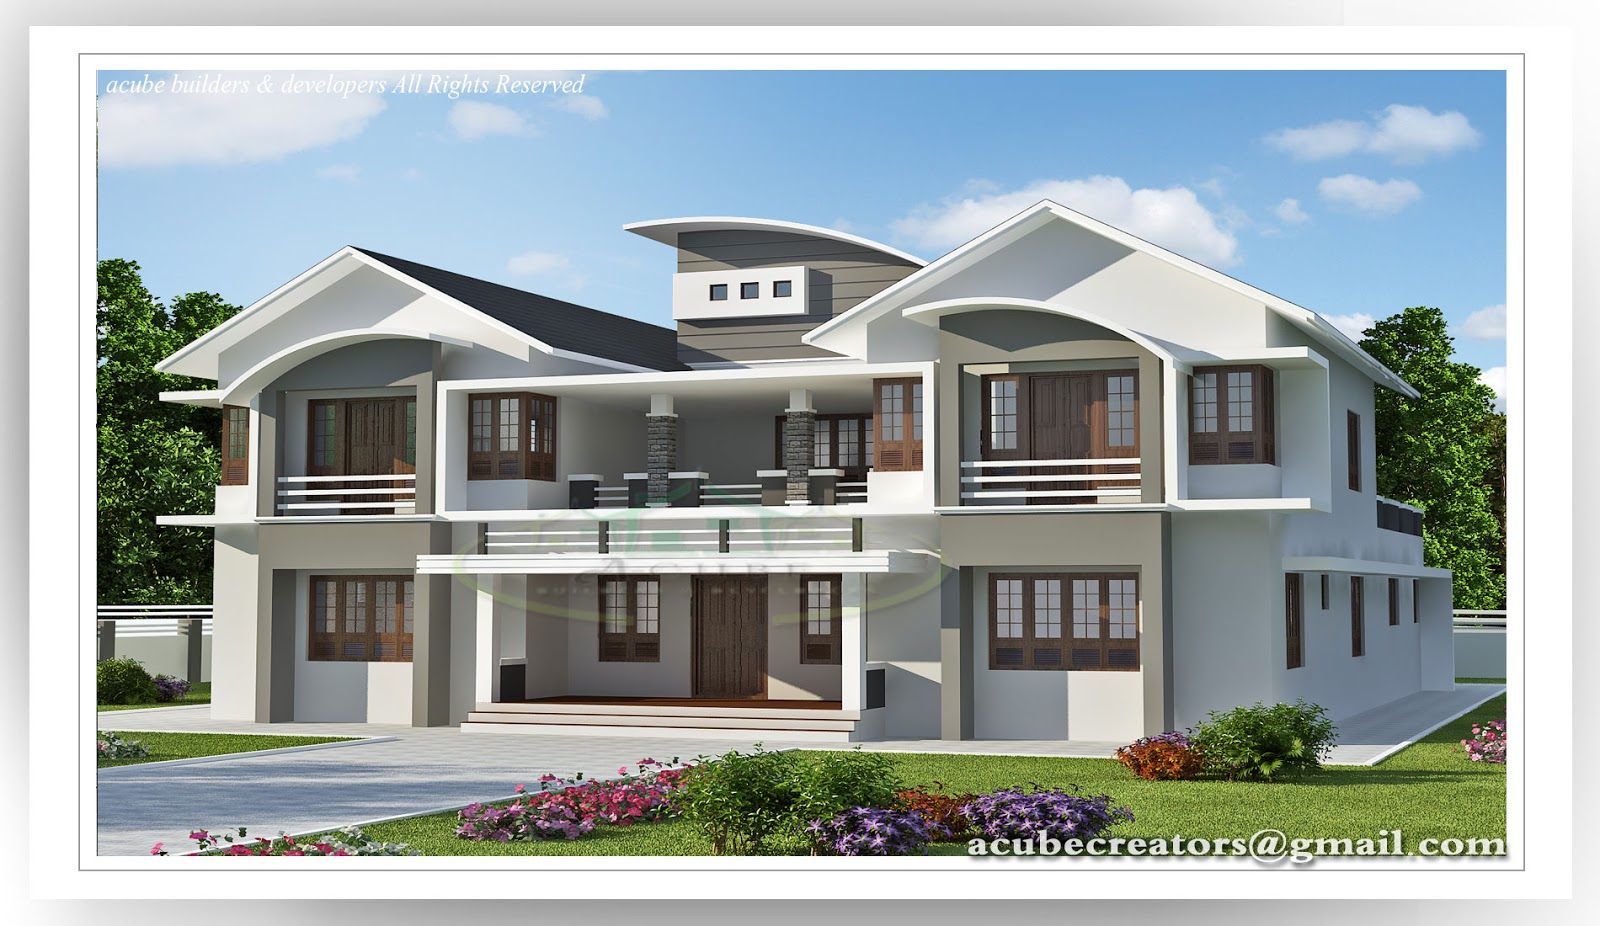 6 bedroom luxury villa design 5091 plan 149 for Home design 6